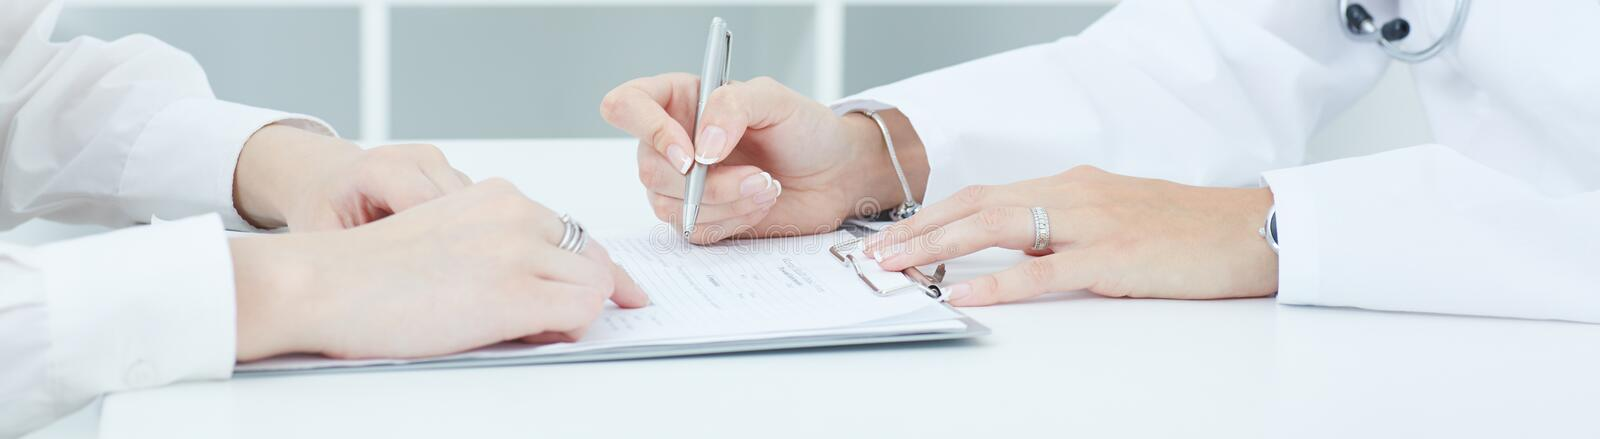 Doctor explaining to her female patient how to fill the medical form at office. Just hands over the table. stock photo